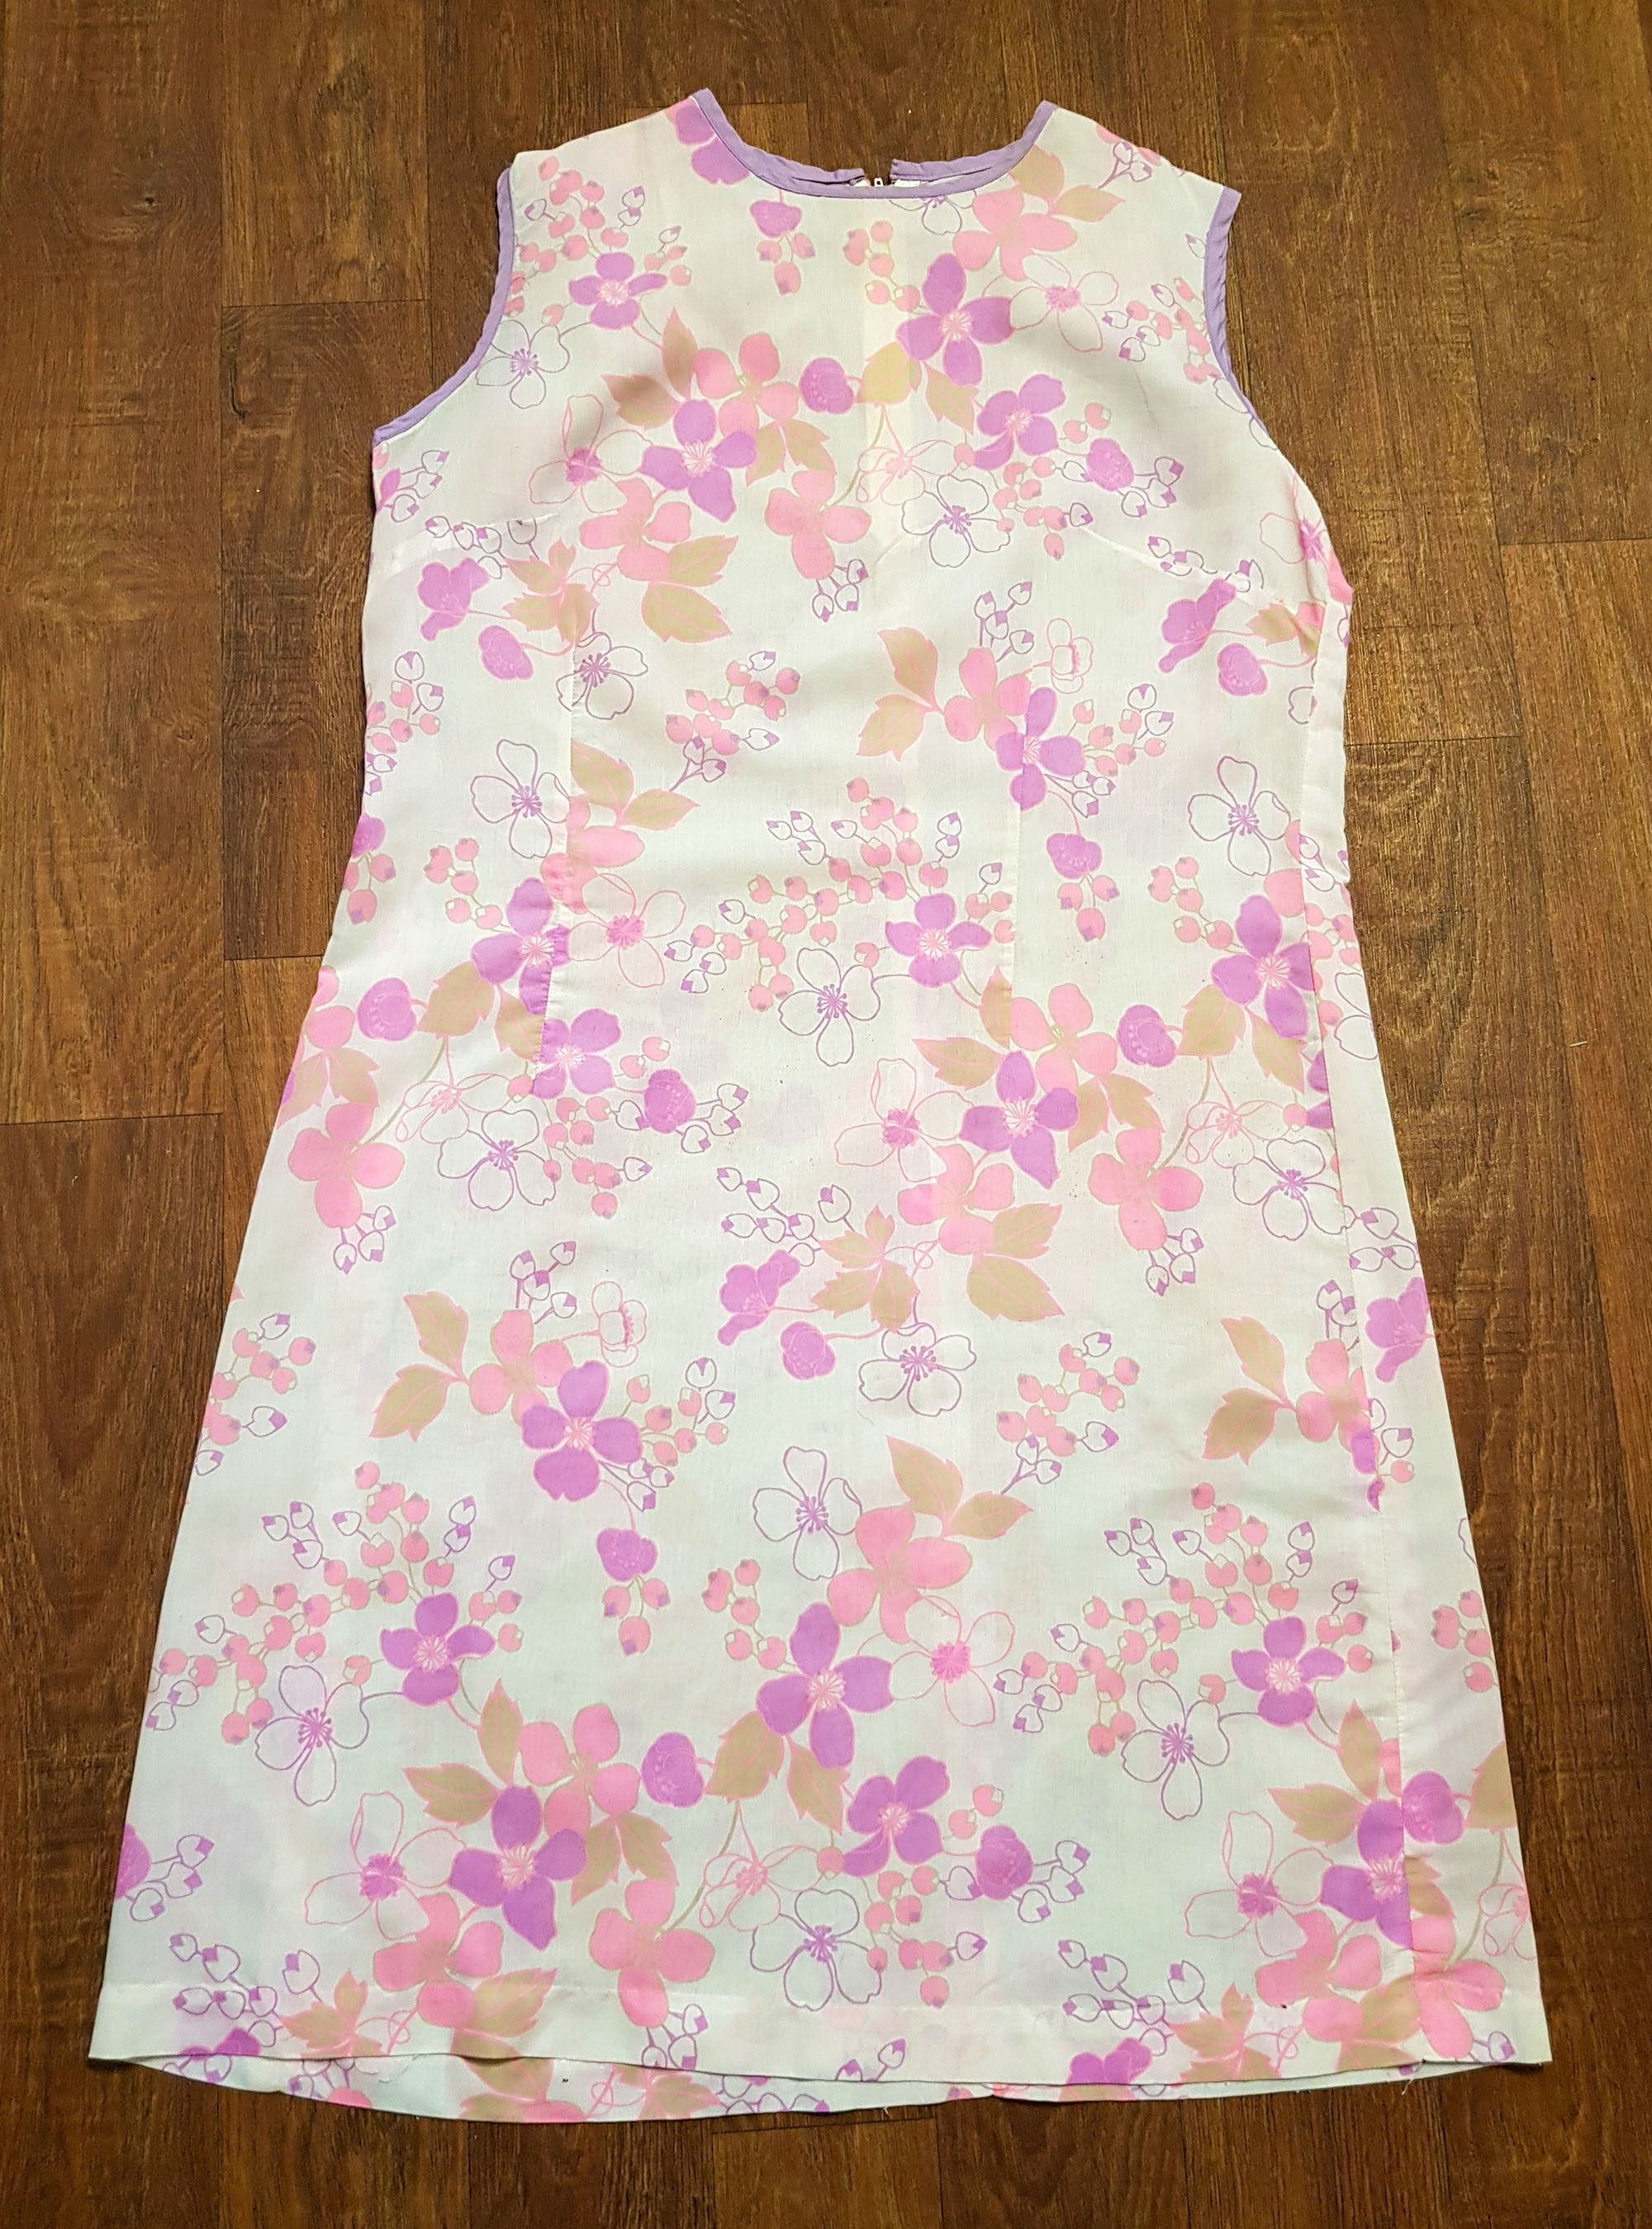 1960s Vintage Sheer Pink Floral Shift Dress UK Size 16/18